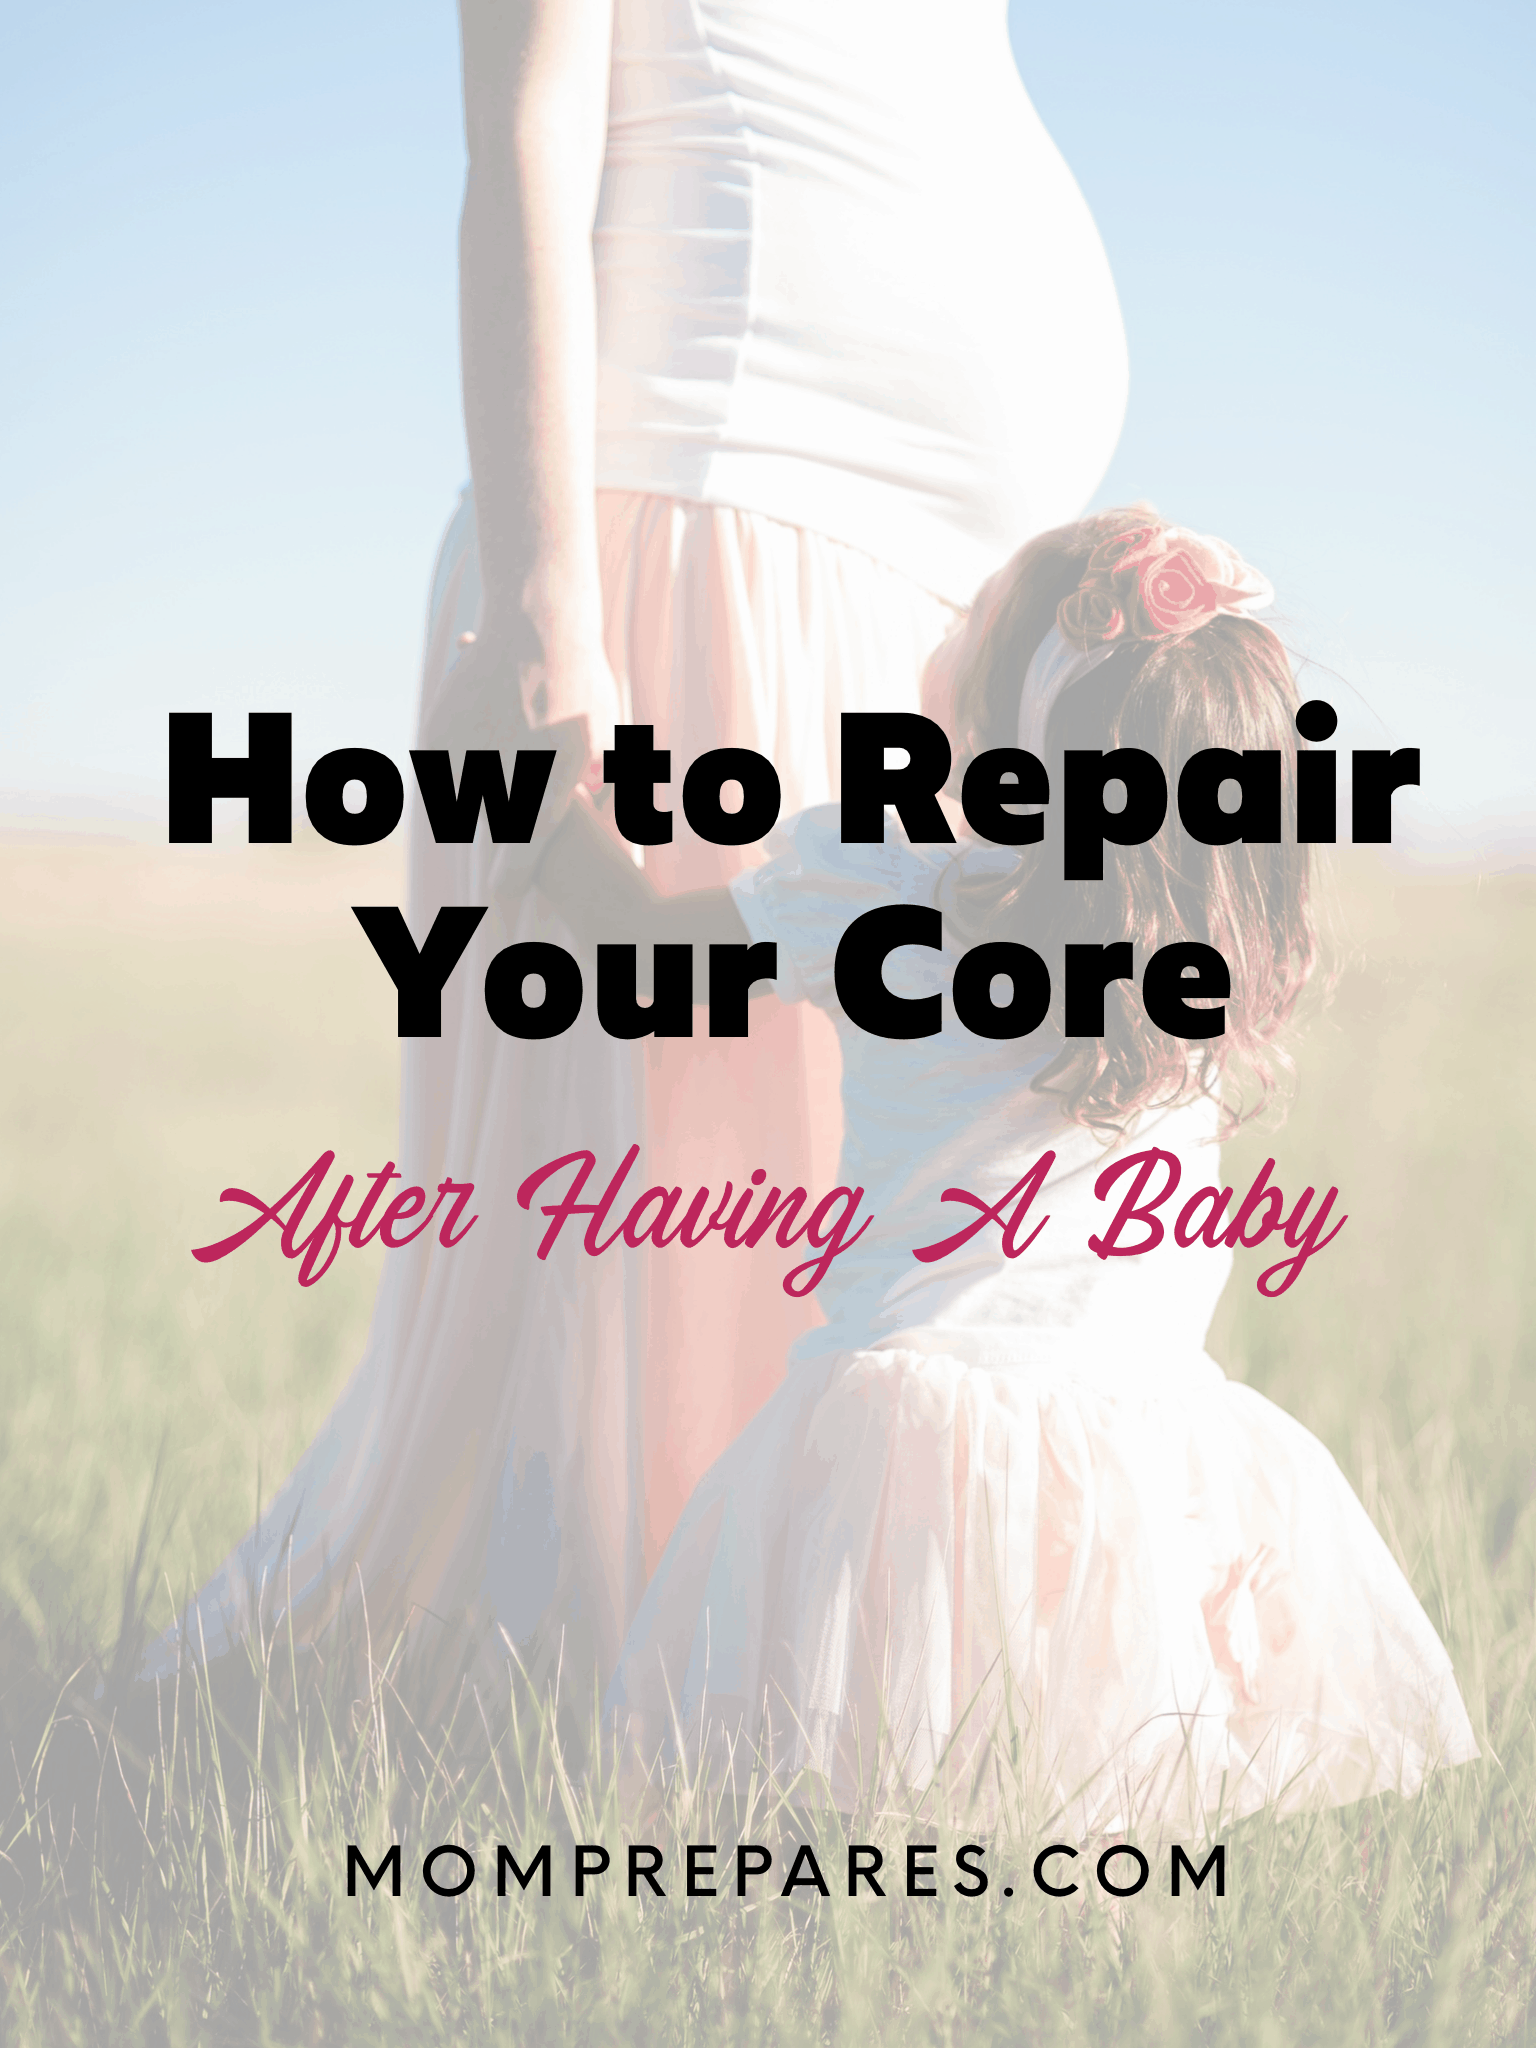 How to Repair Your Core After Having a Baby | momprepares.com